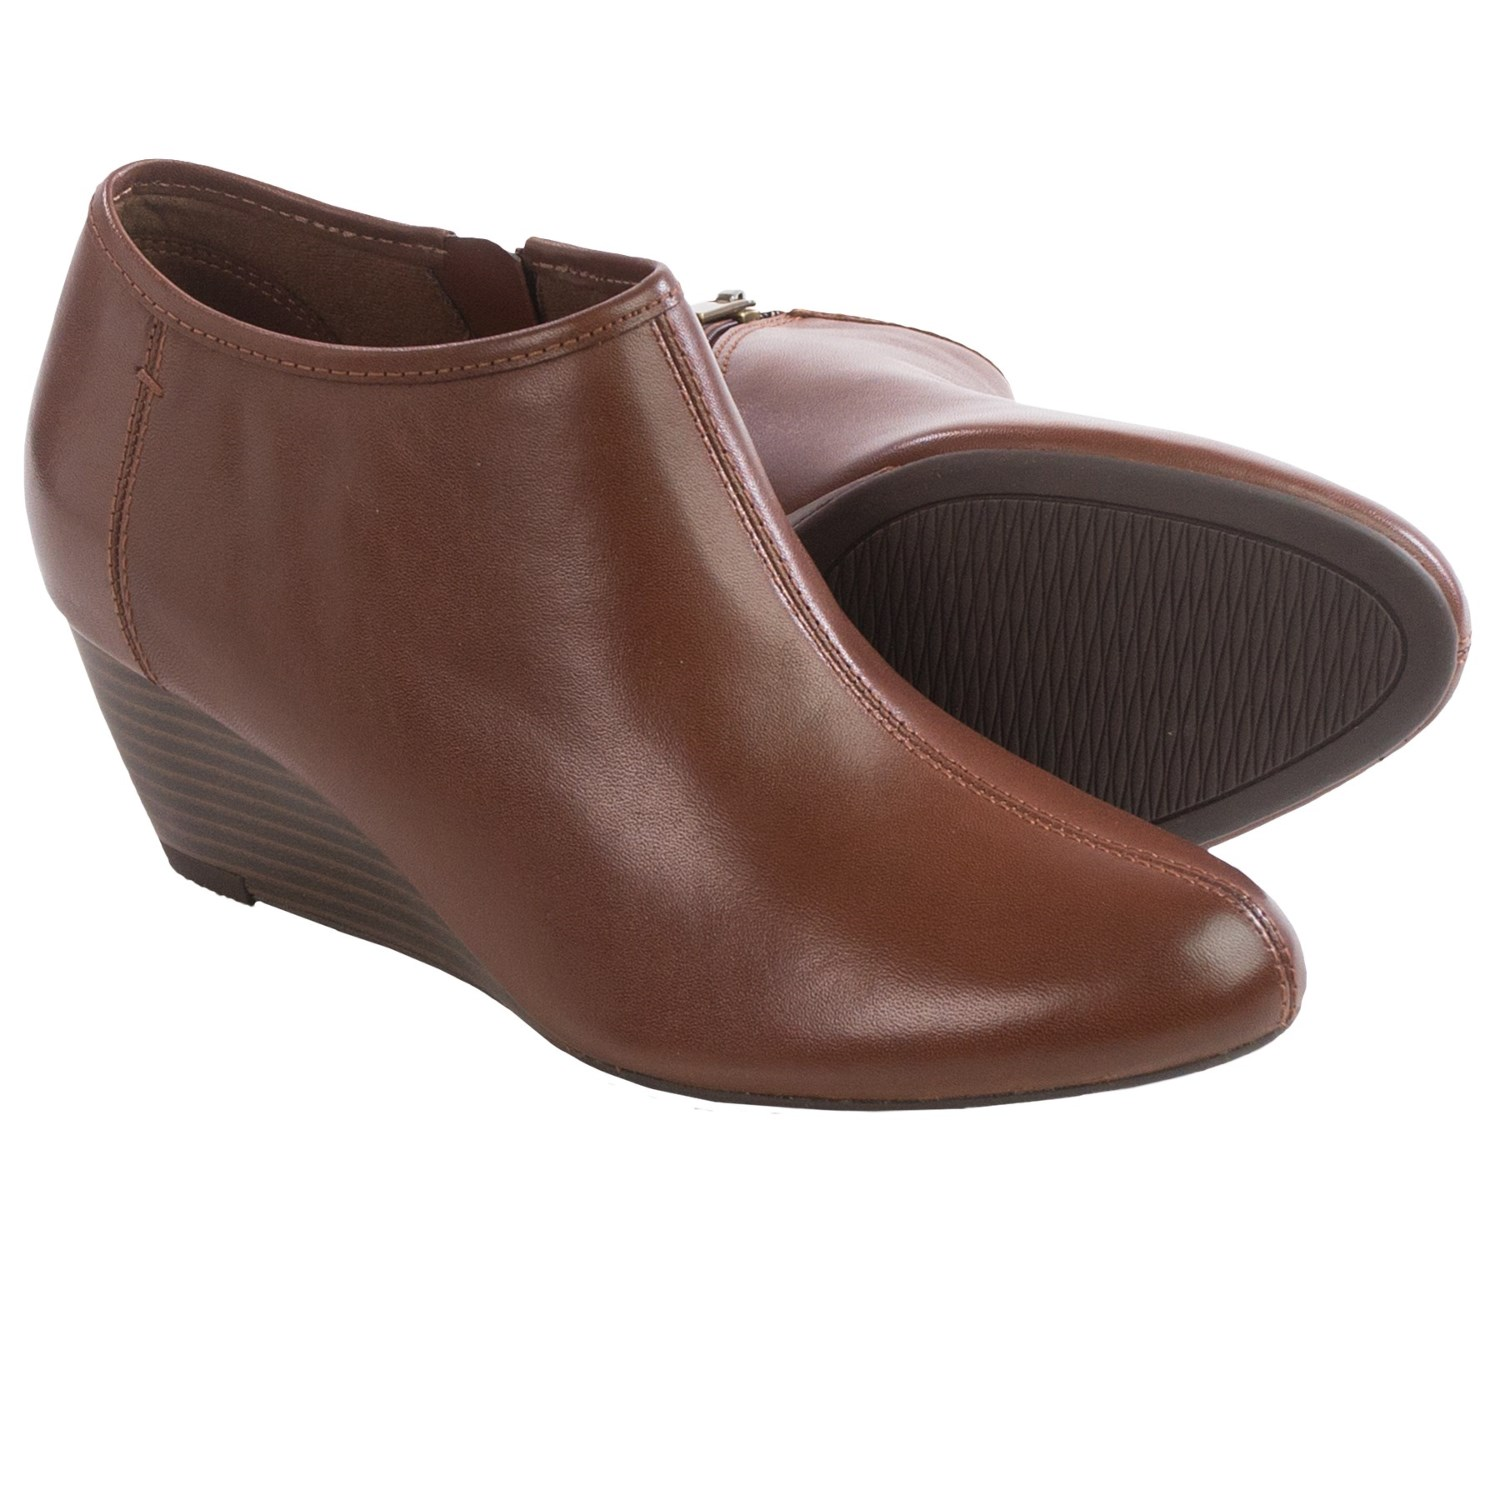 clarks brielle abby ankle boots for 122aa save 72